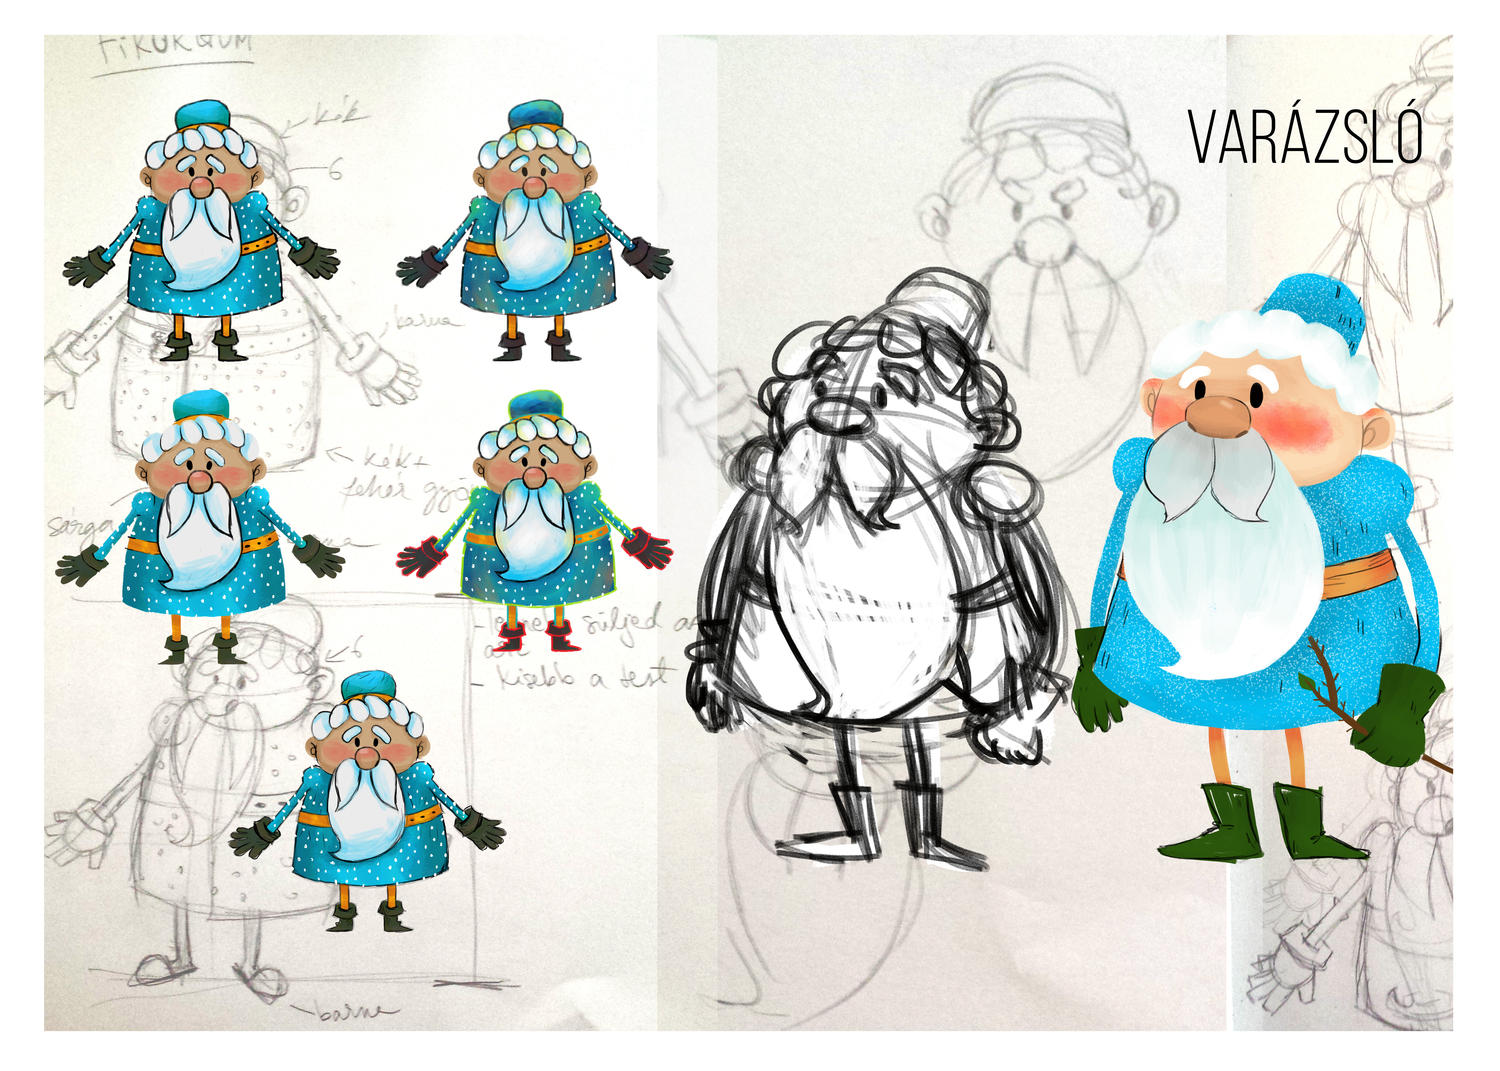 2d Character Design Books : D cartoon style character design by hedif on envato studio